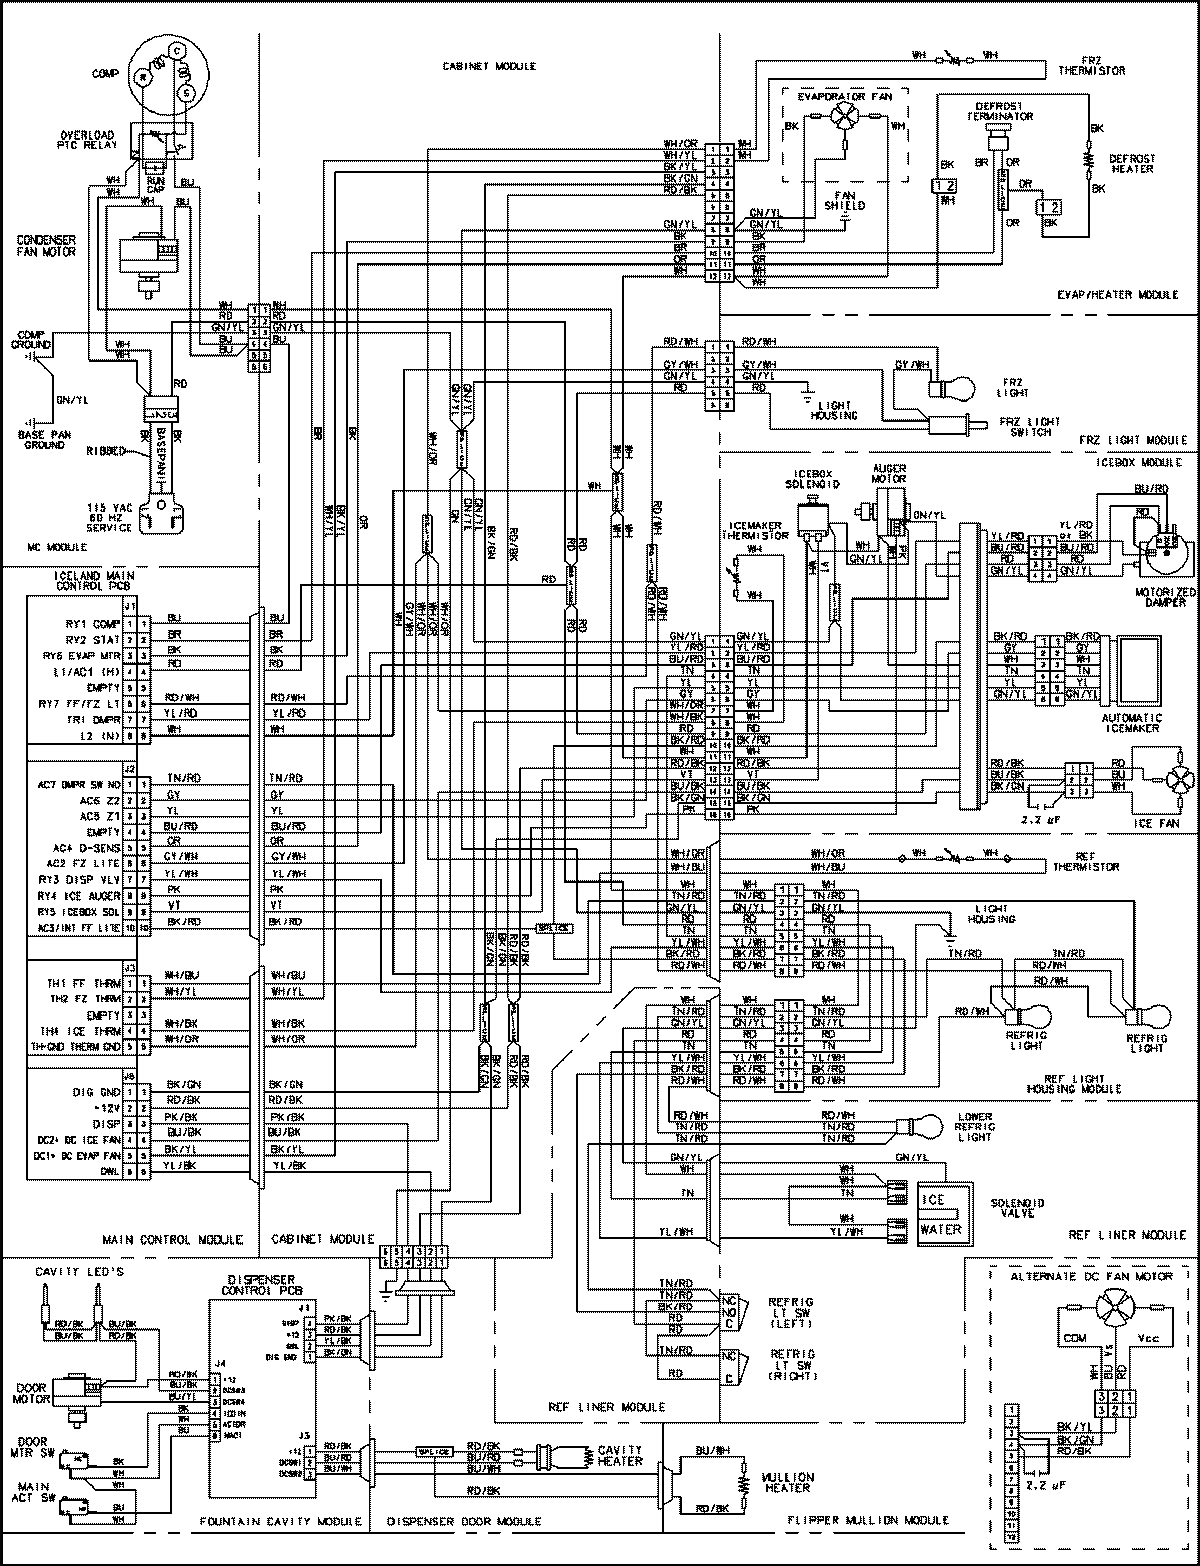 inglis dryer wiring diagram wiring diagrams best inglis dryer wiring diagram auto electrical wiring diagram bosch dryer wiring diagram wtvc4300us inglis dryer wiring